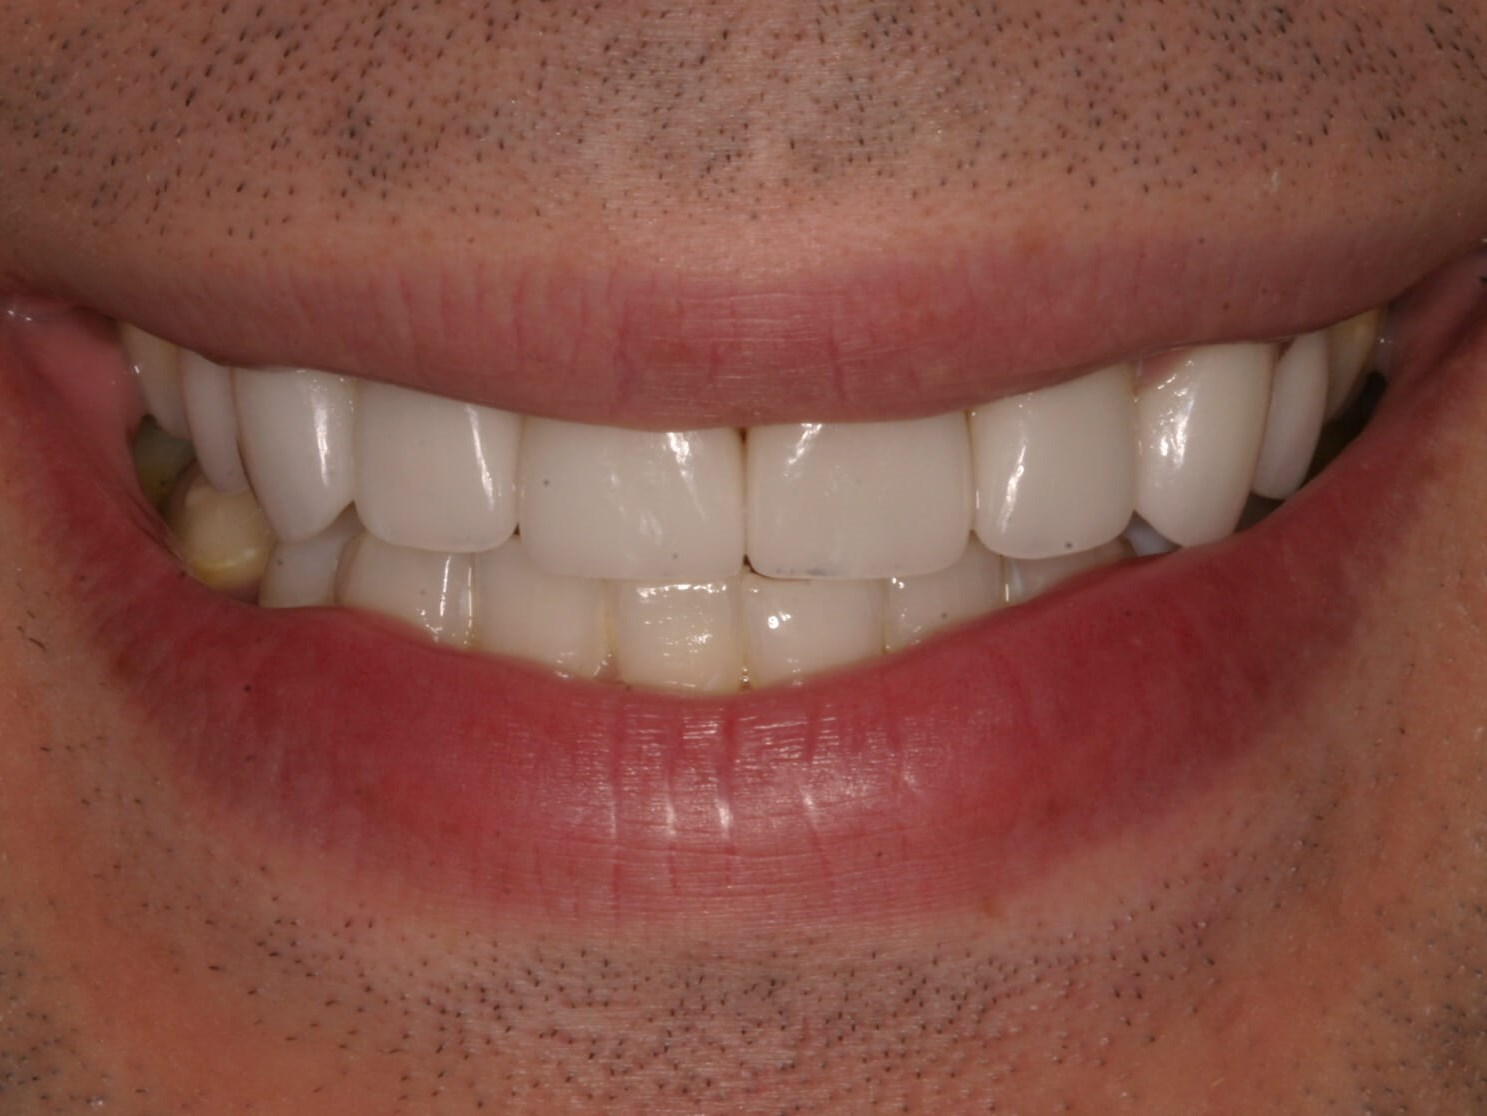 Worn Teeth to Great Smile! After